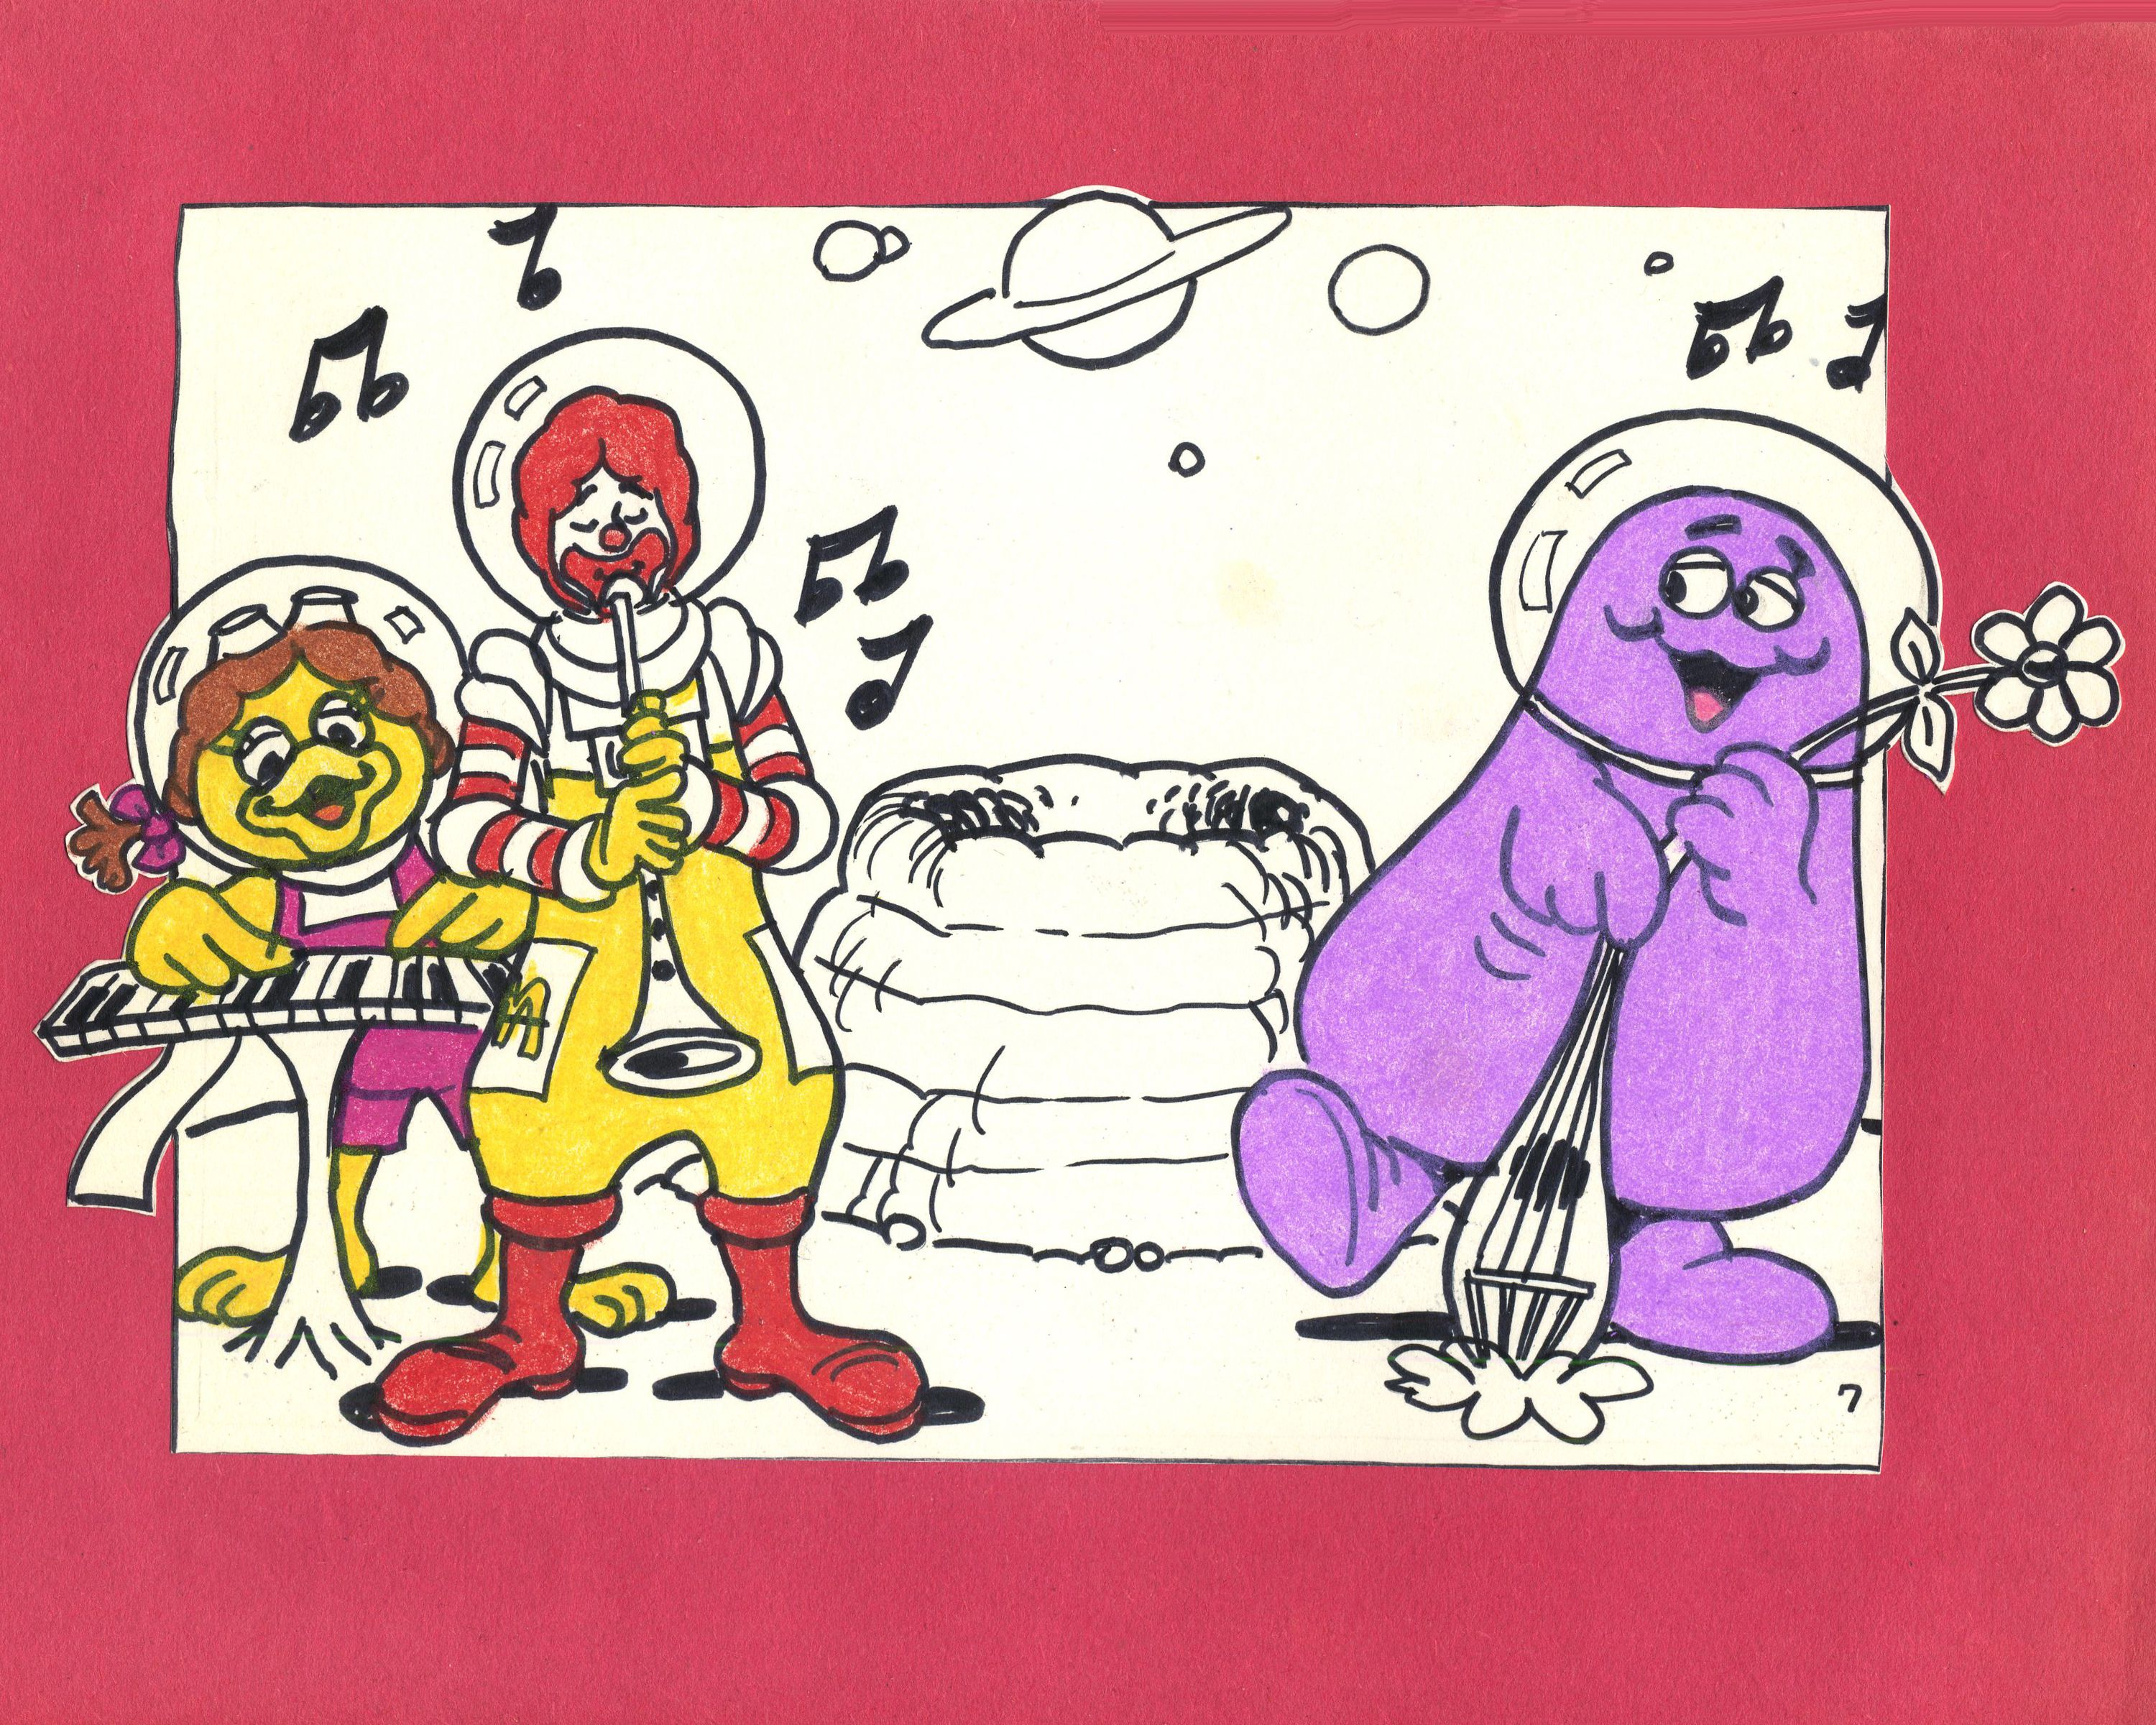 Looks like Ronald McDonald, Birdie and Grimace are exploring some ...